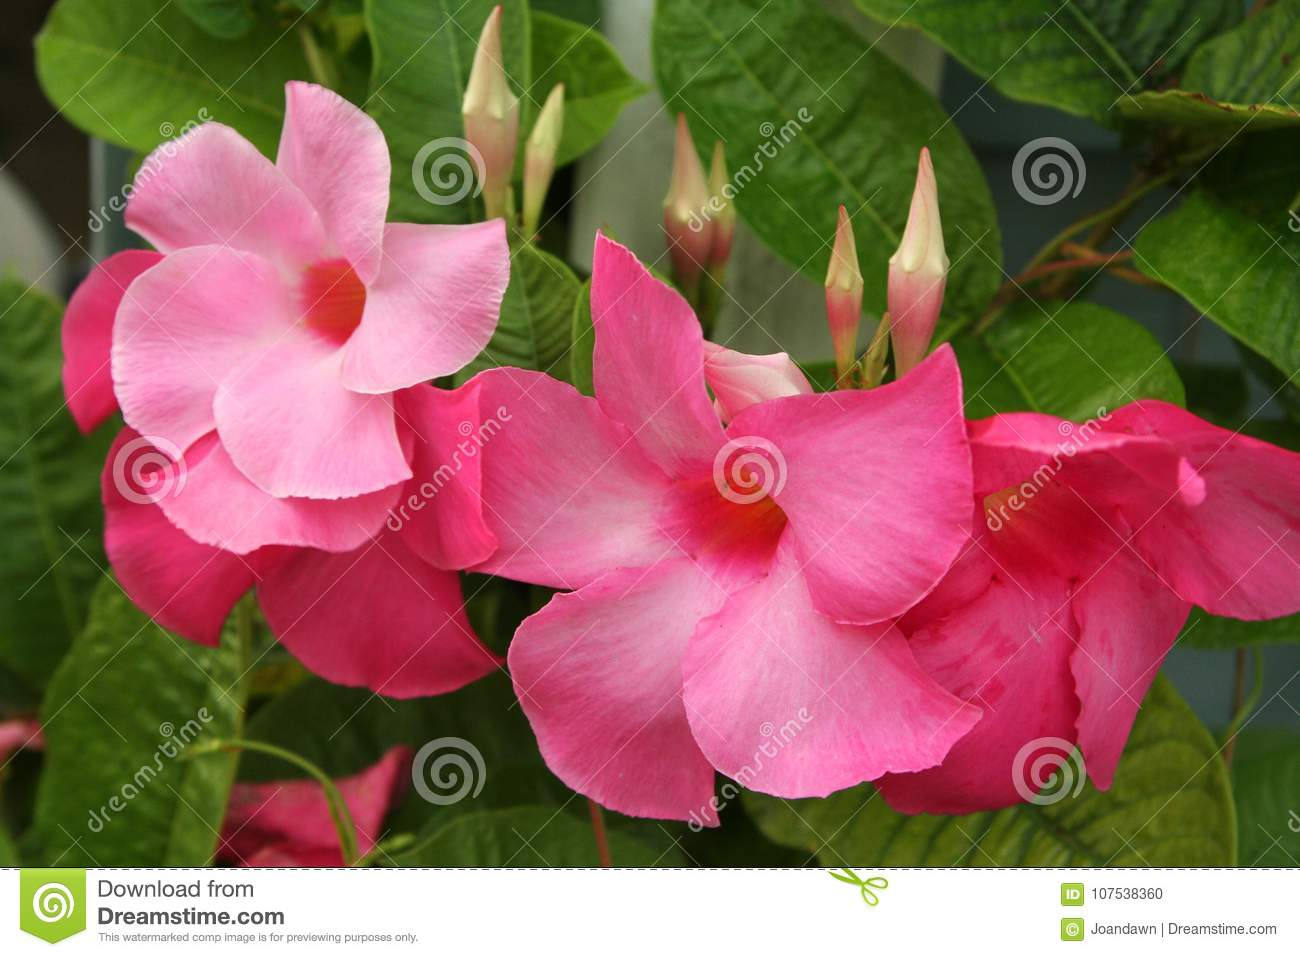 Mandevilla Blossoms In Shades Of Vibrant Pink And Their Buds Grow On